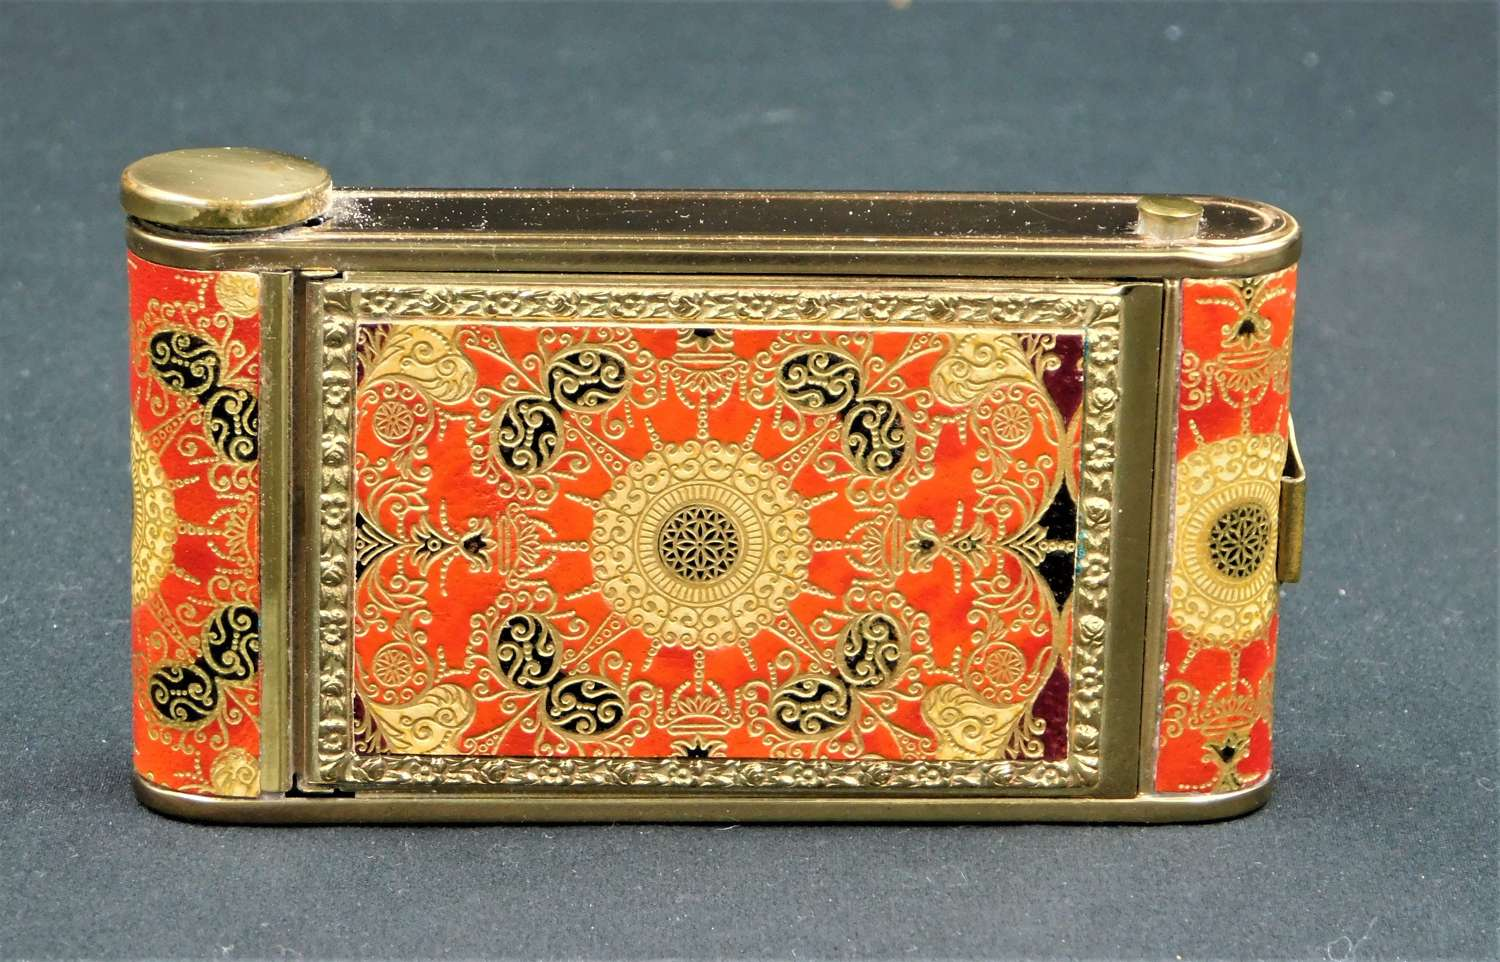 1930's Camera style vanity compact case